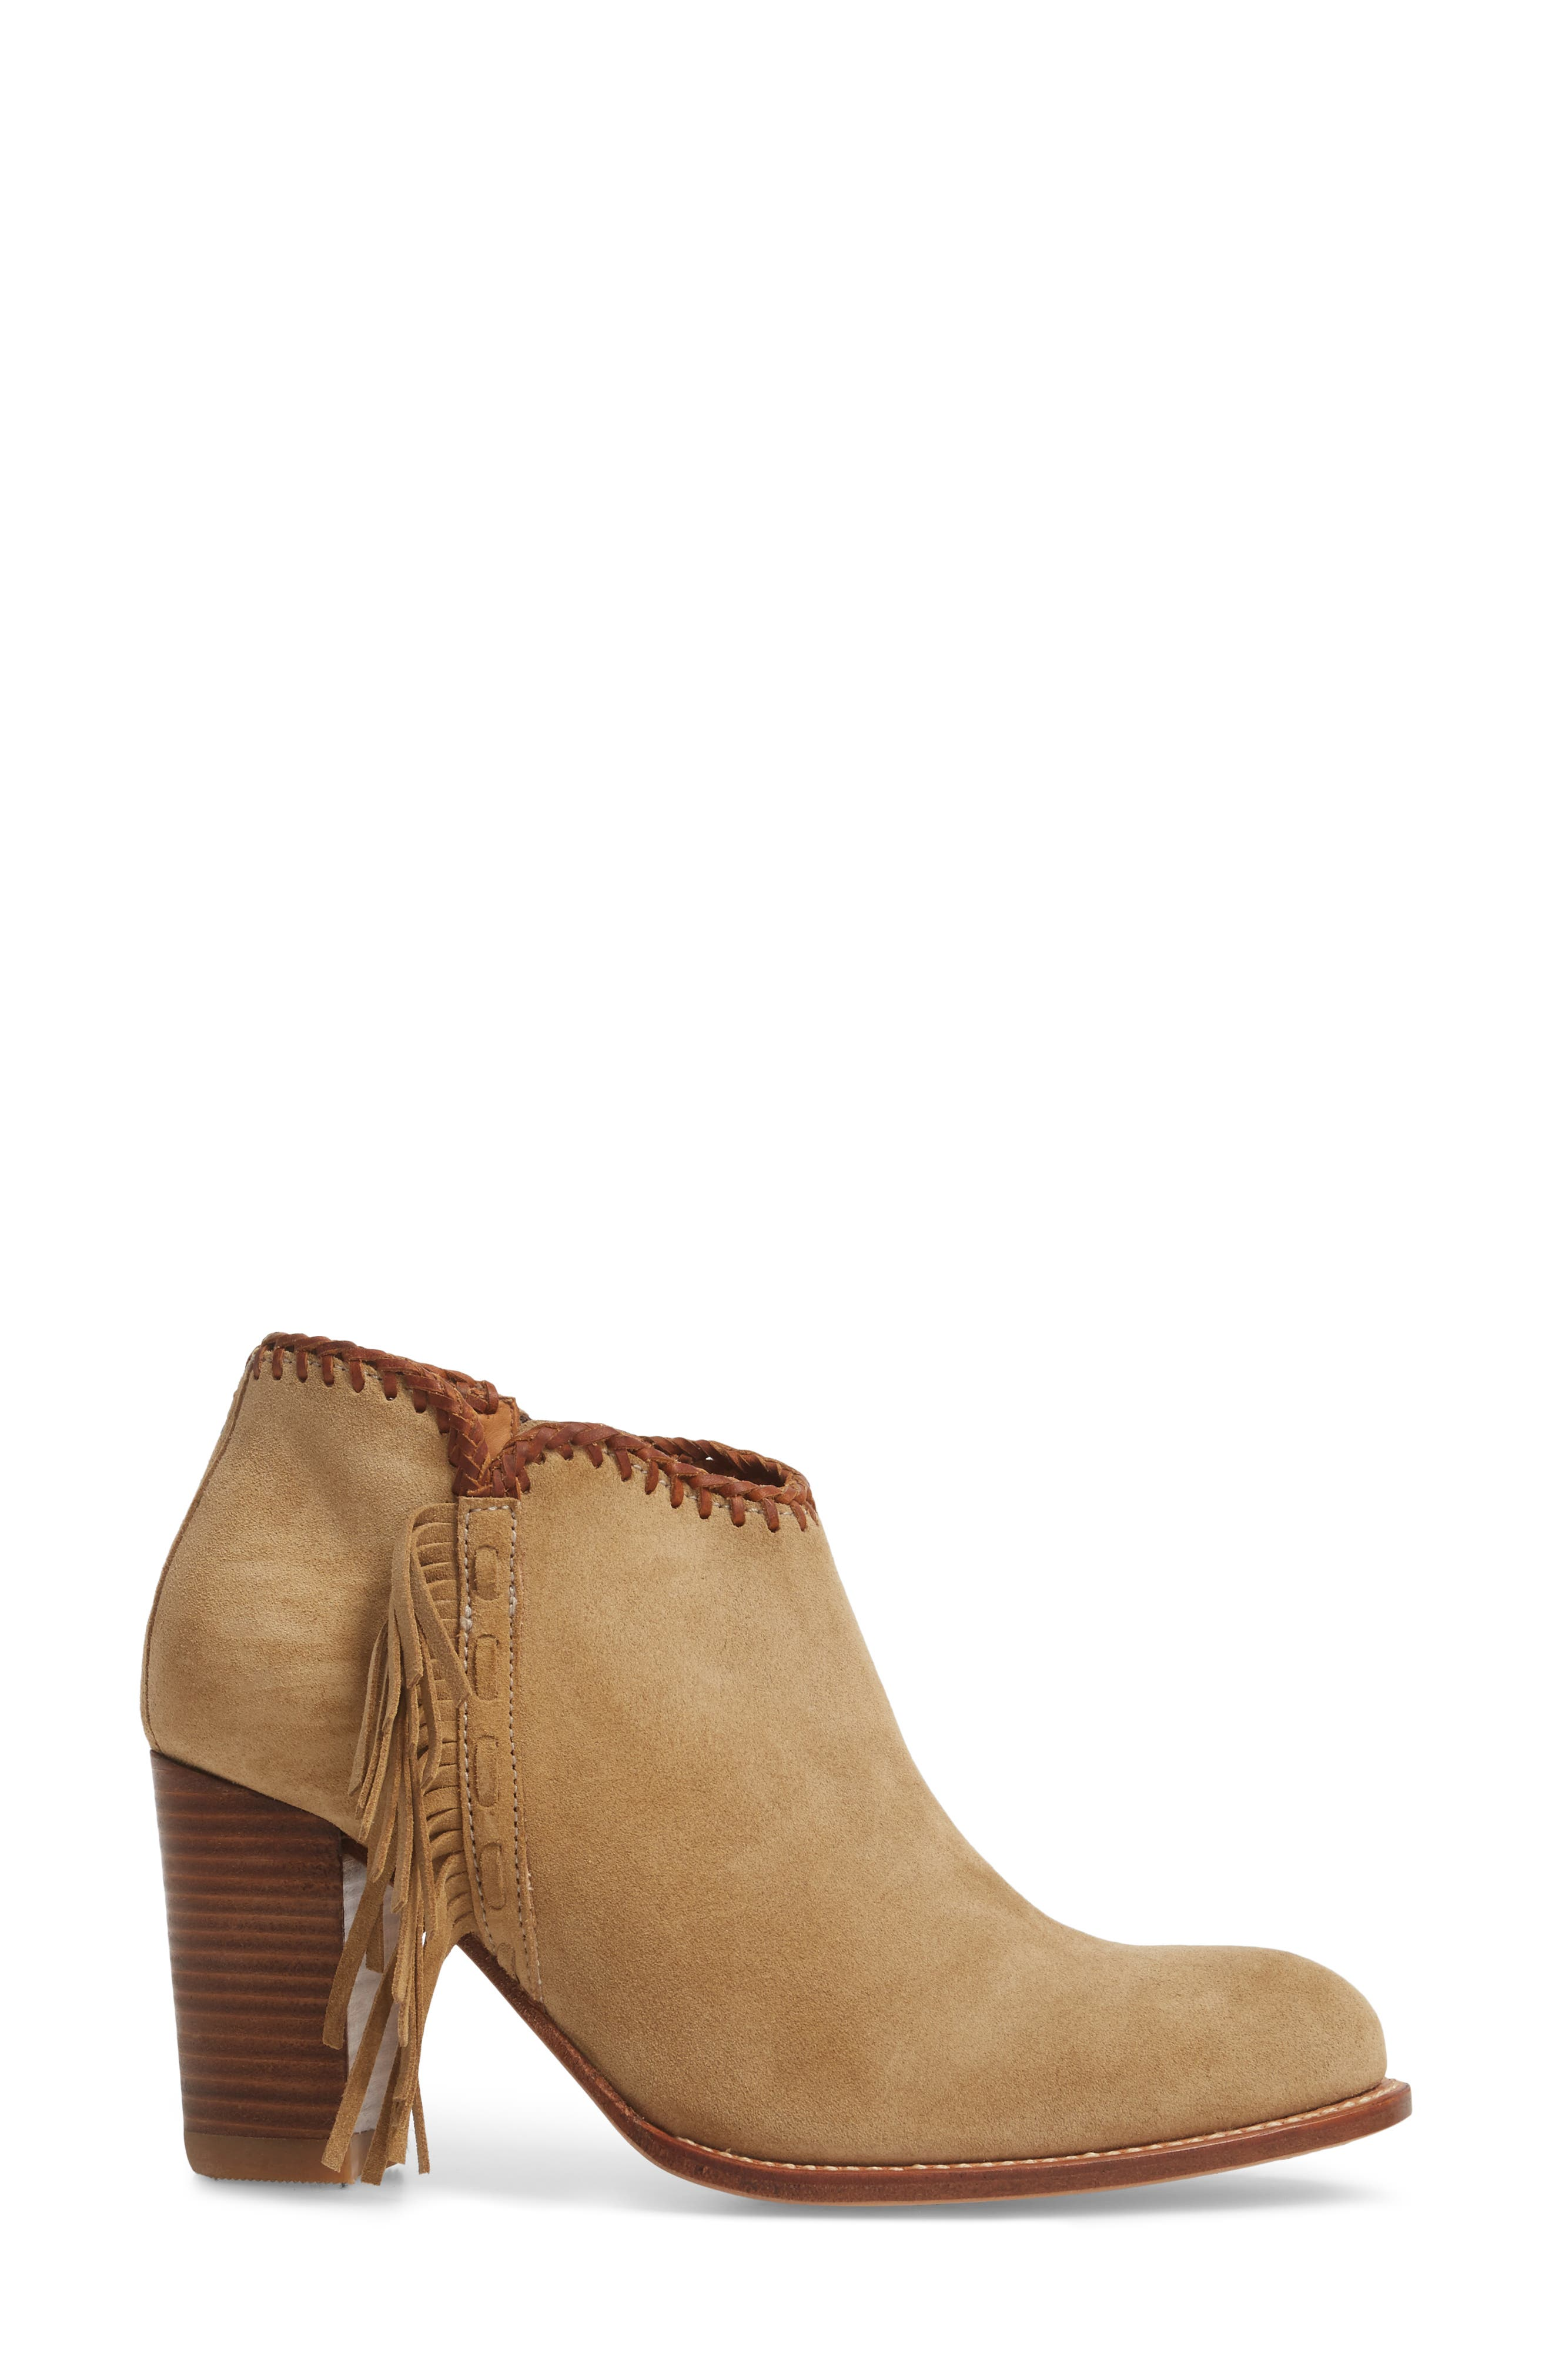 Sonya Fringed Bootie,                             Alternate thumbnail 3, color,                             Taupe Suede